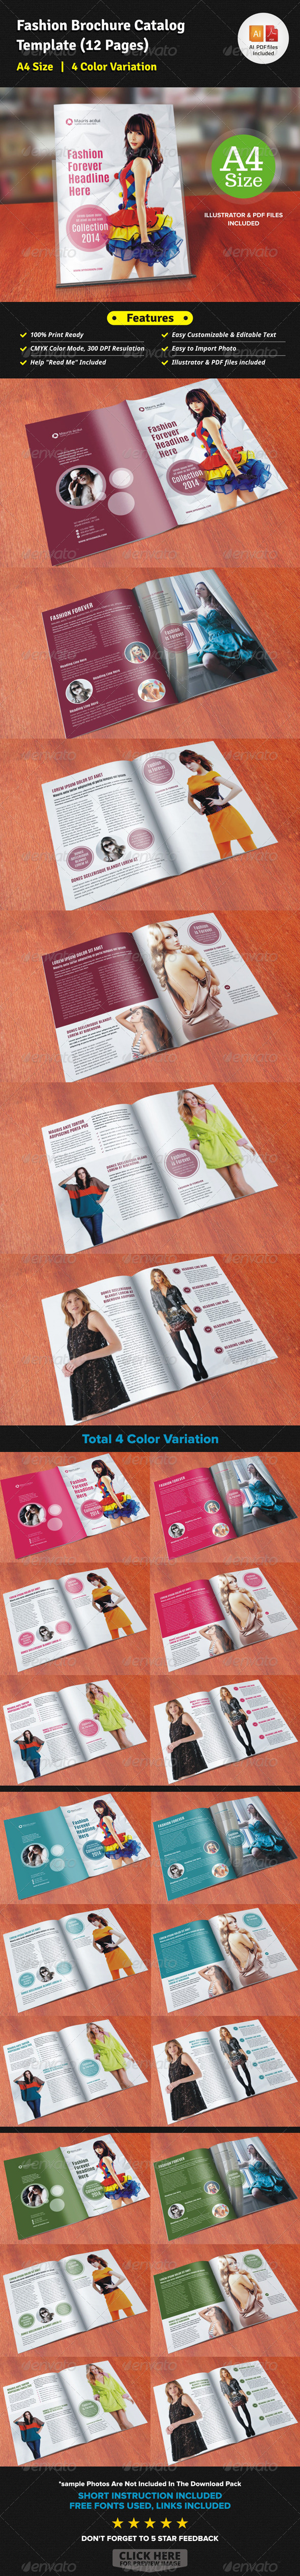 Fashion Brochure Catalog (12 Pages) - Corporate Brochures